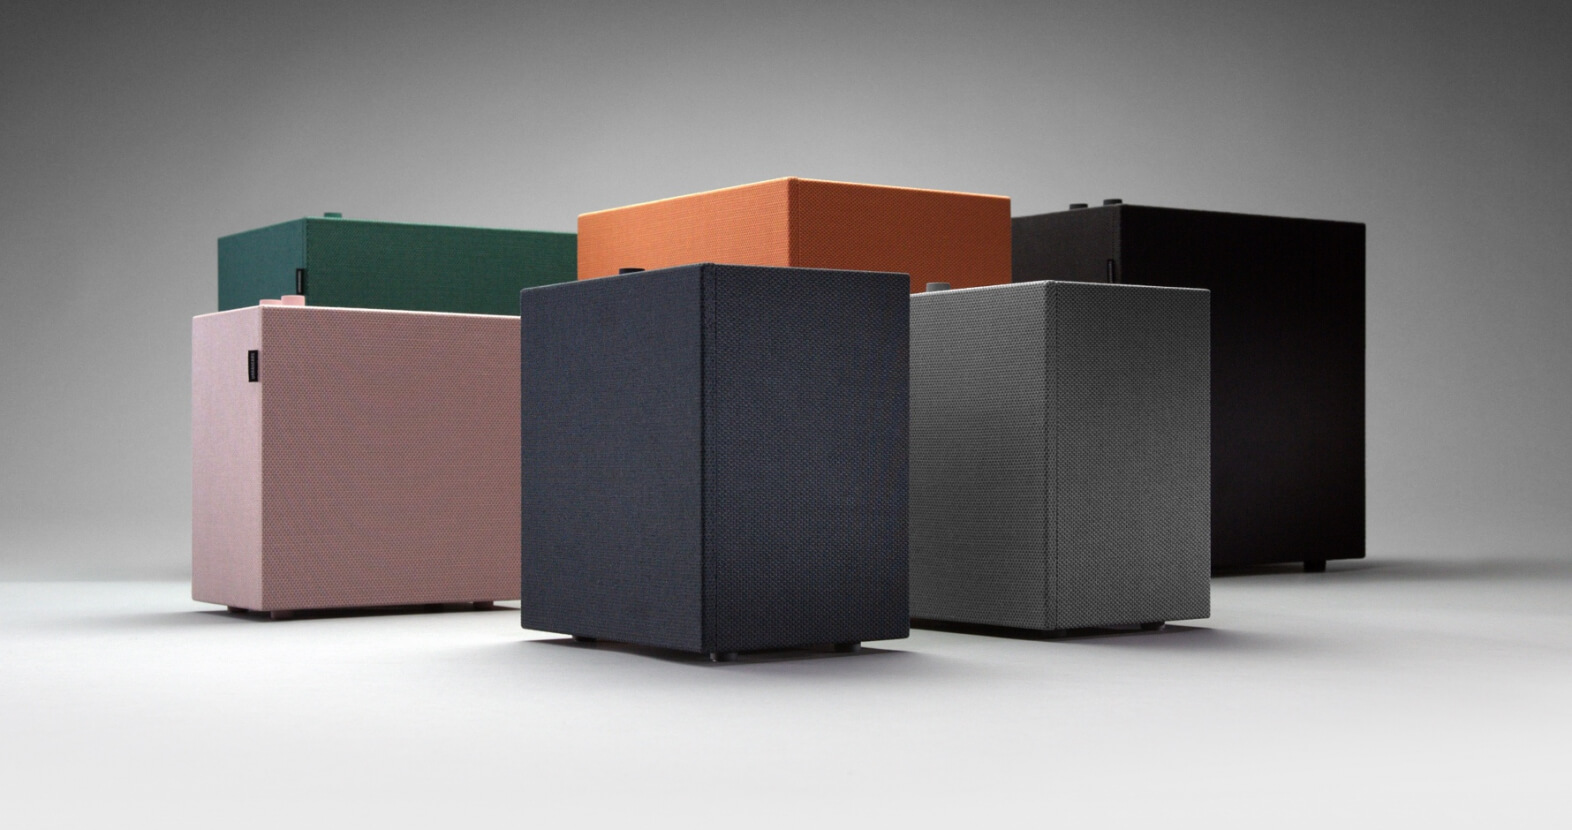 Urbanears Smart AirPlay Speakers